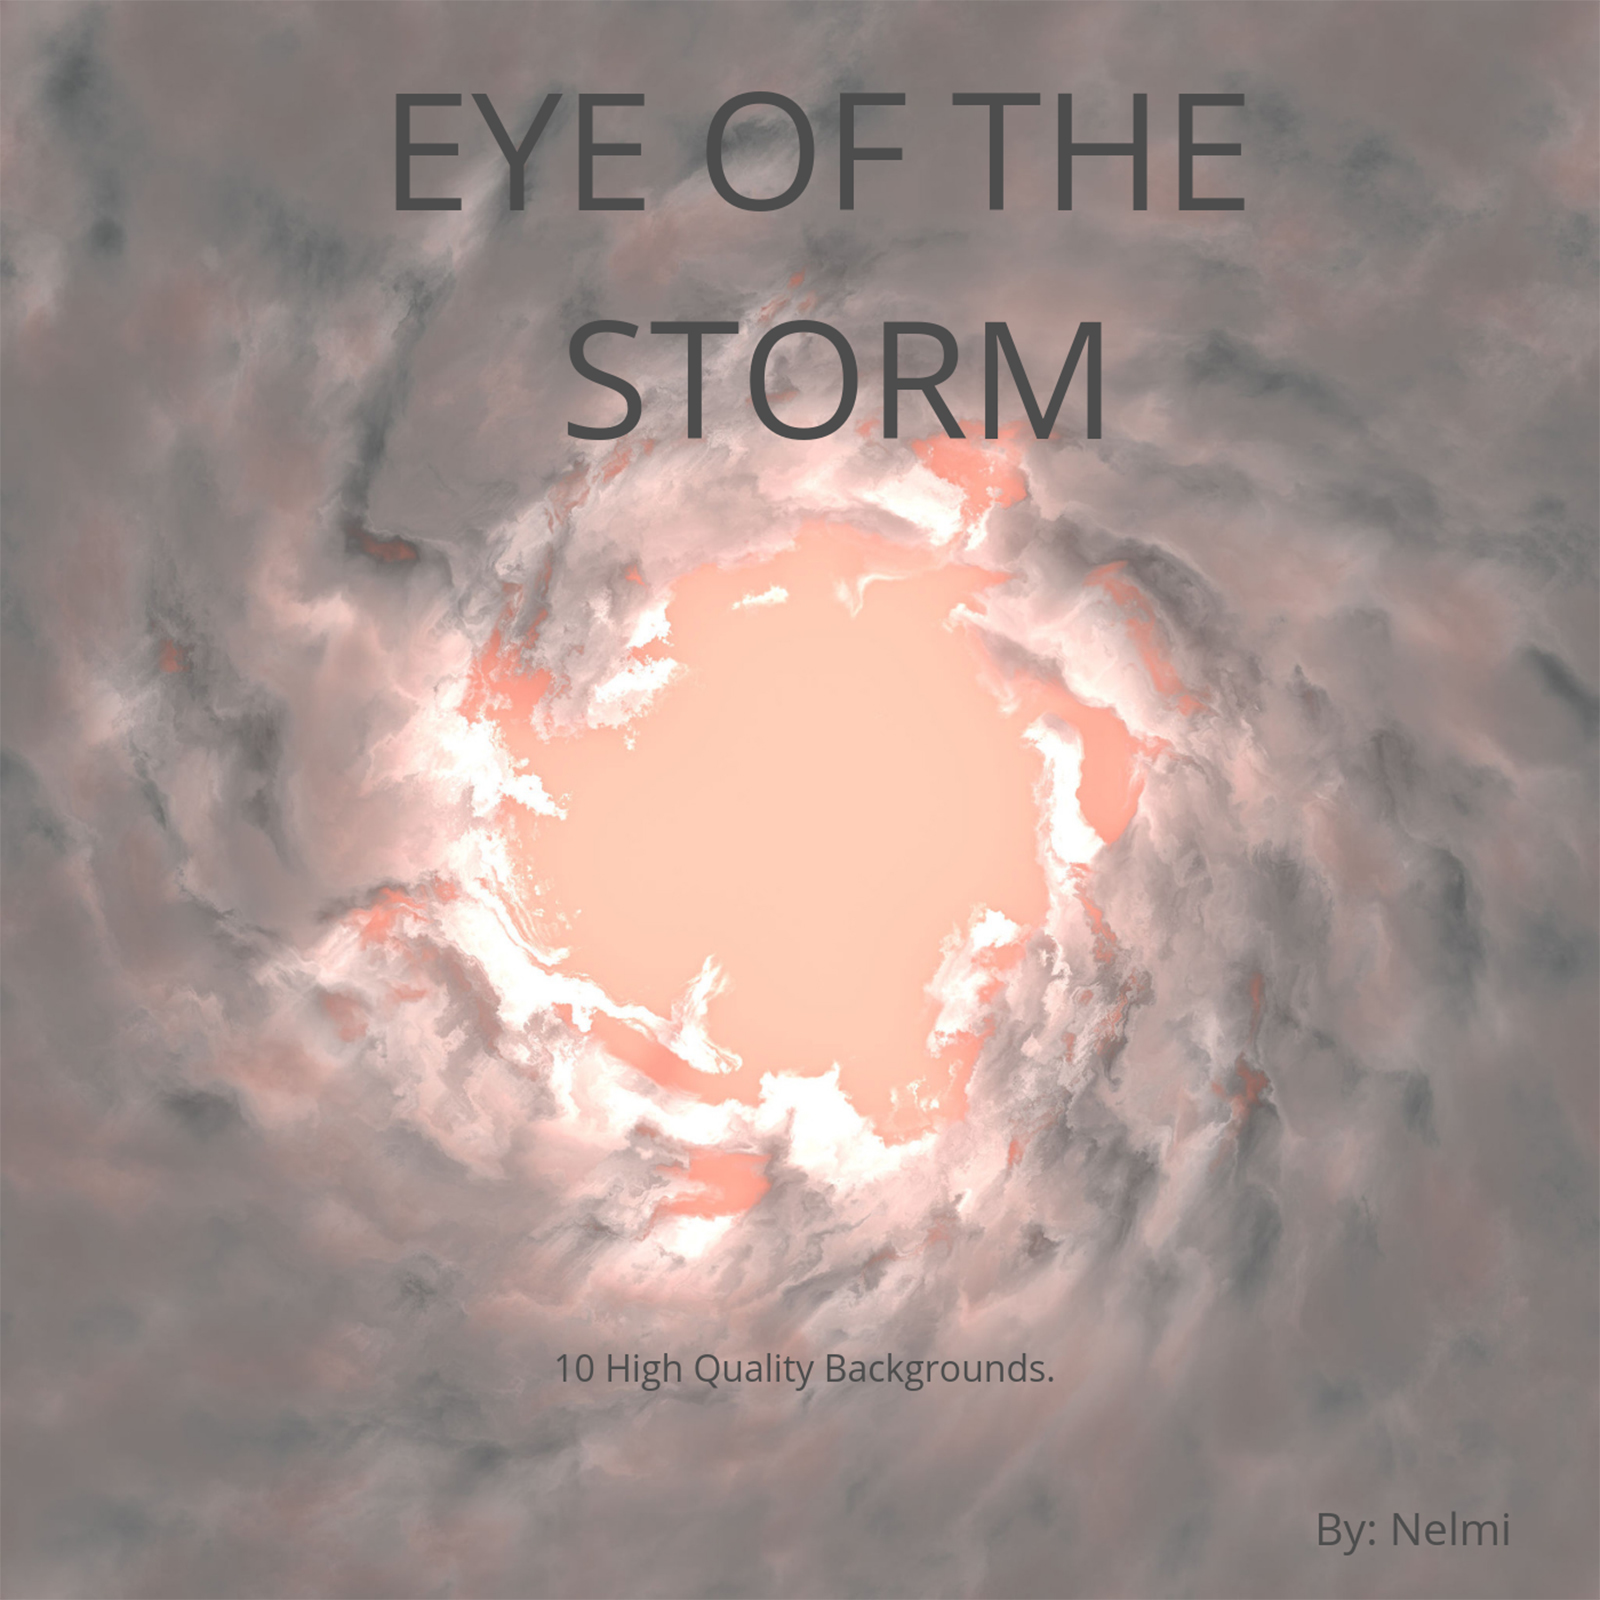 Eye of the Storm - 10 Backgrounds